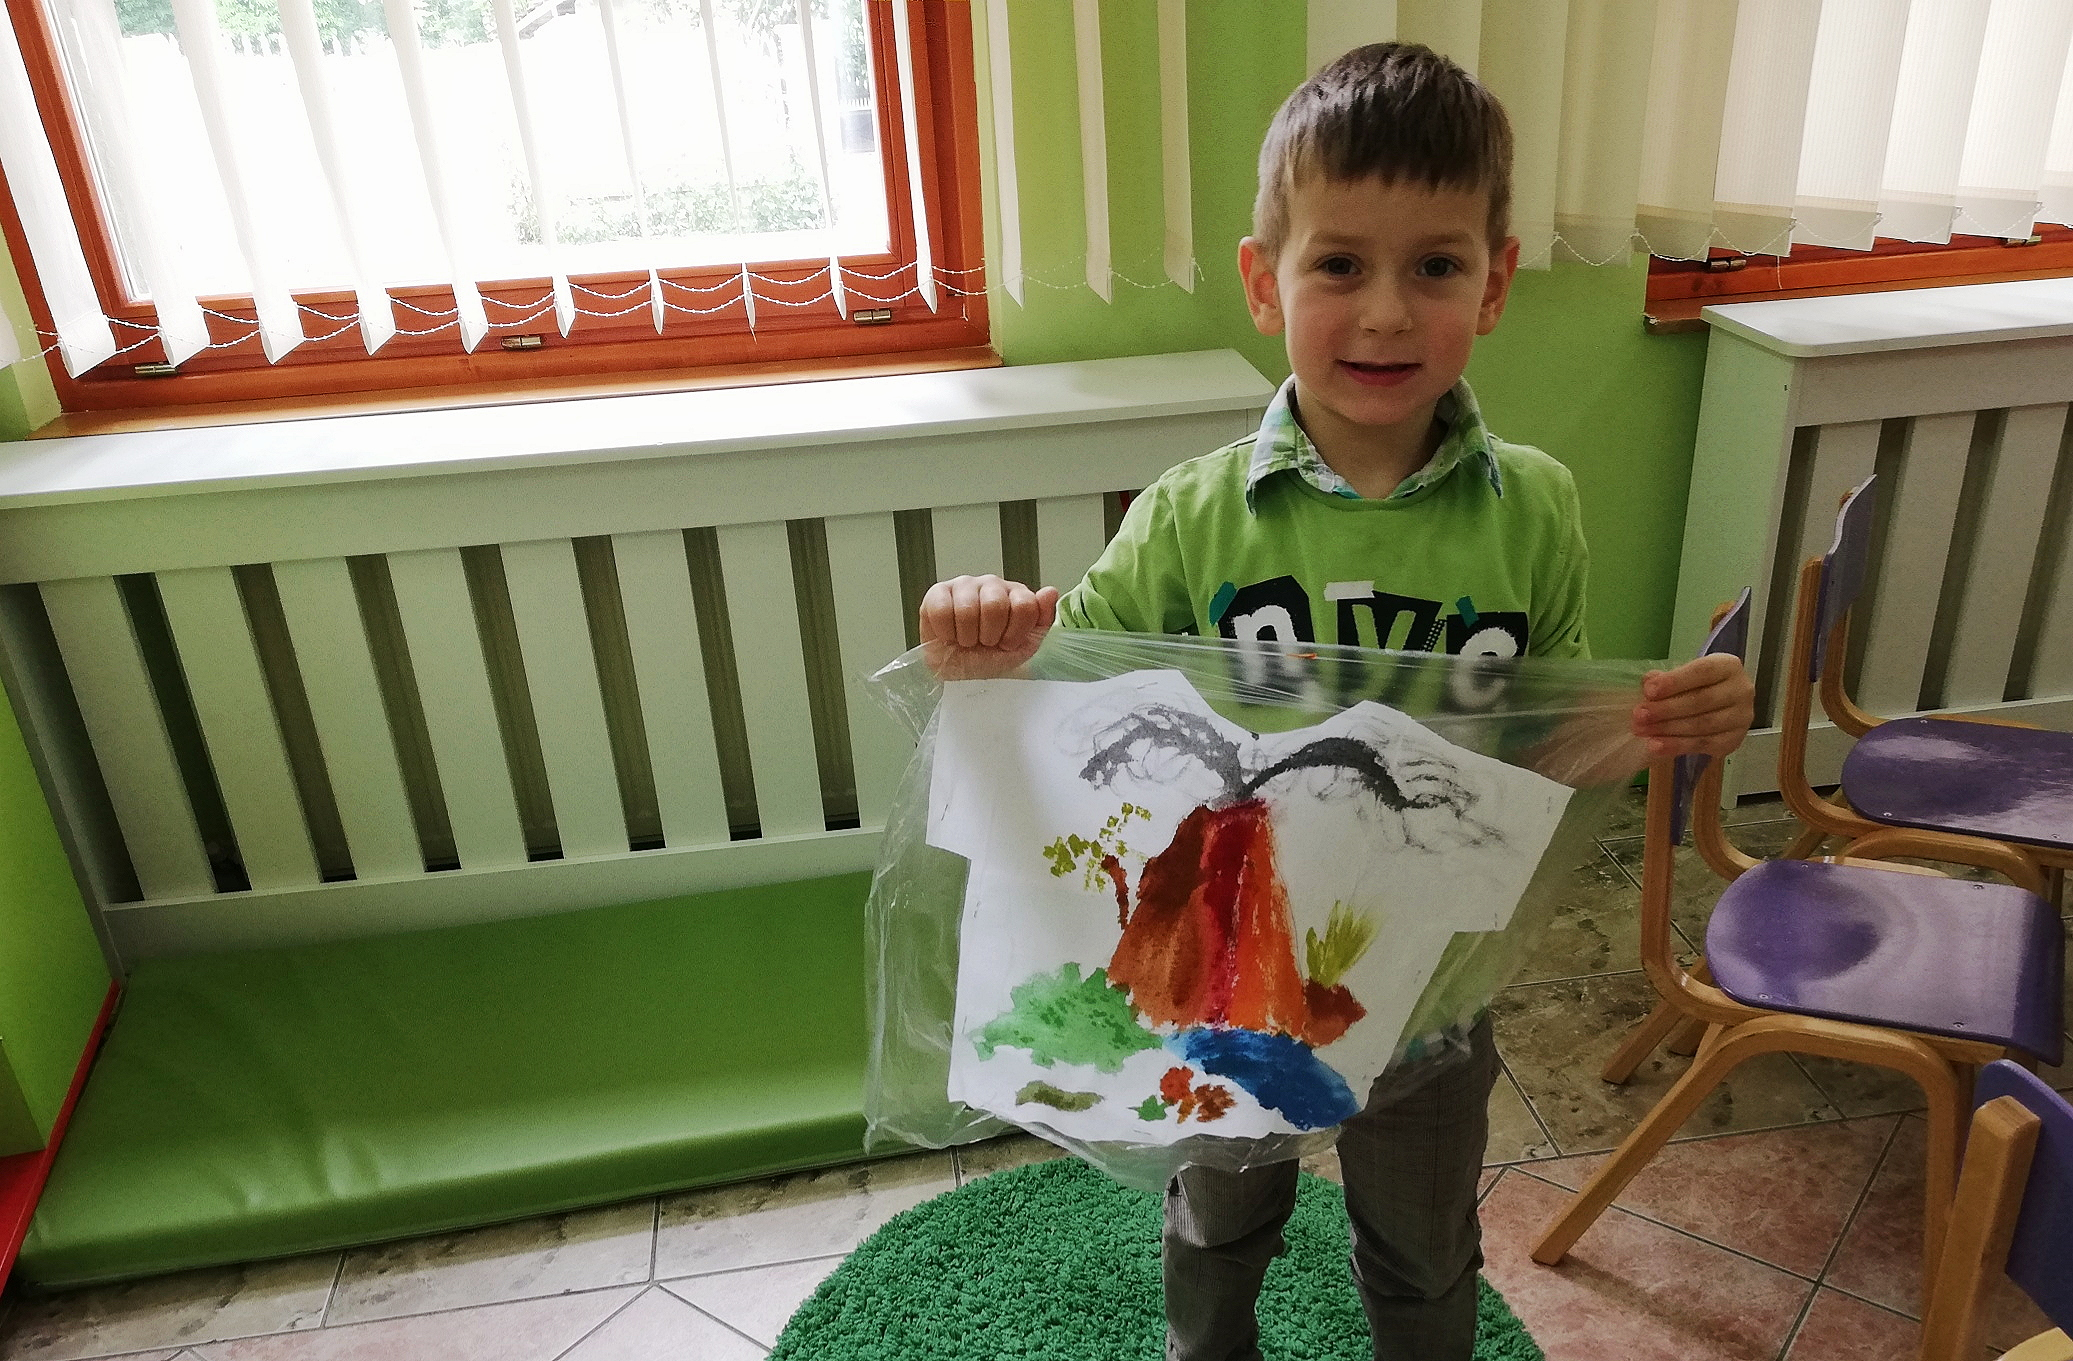 Thanks to donations received last year for Novak's 31st birthday, little Lazar from the village Bobovo got the opportunity to enroll into preschool.